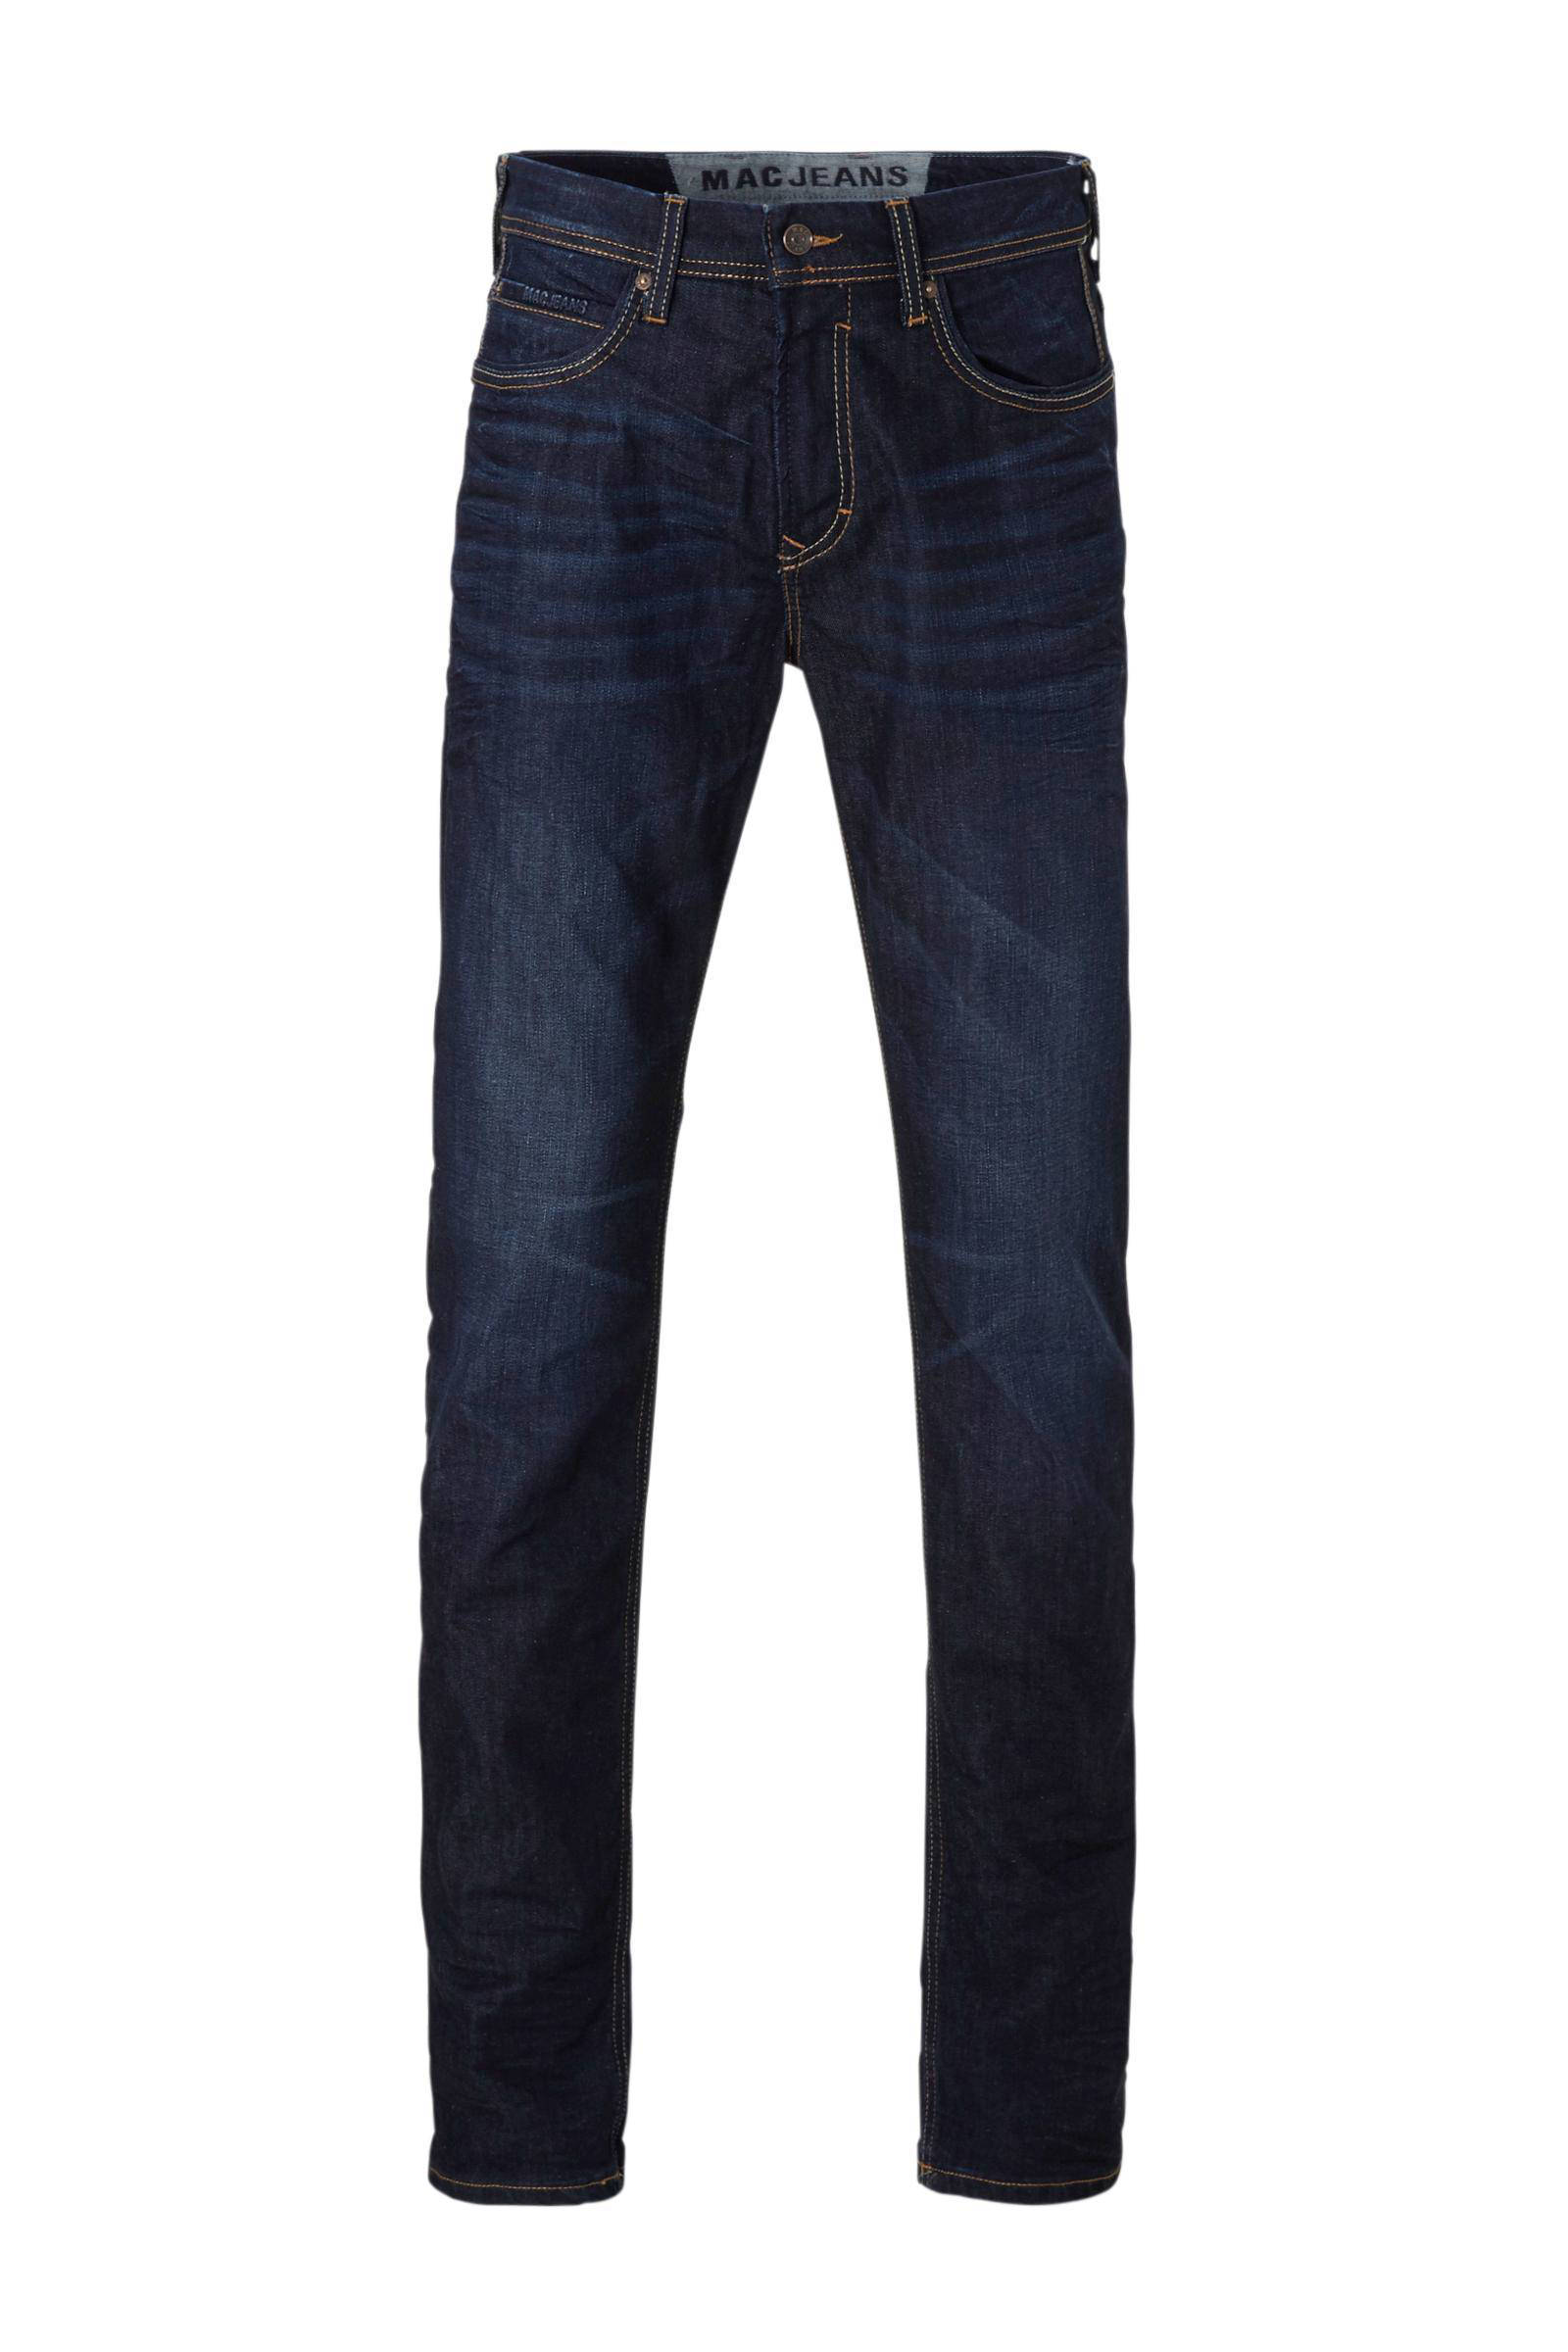 Mac Fit Regular Wehkamp Pipe Jeans Ben rraq5Rw